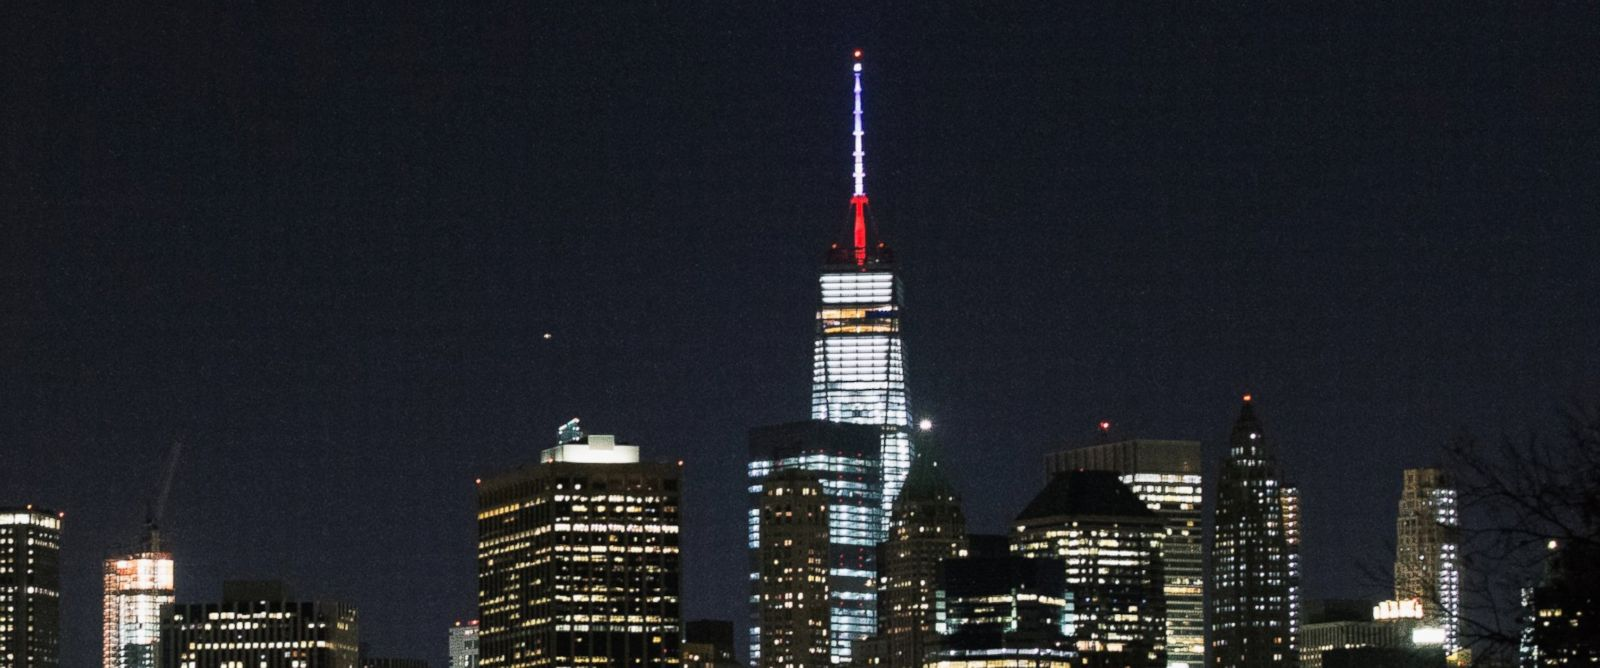 PHOTO: One World Trade Centers spire is shown lit in French flags colors of white, blue and red in solidarity with France after tonights terror attacks in Paris on Nov. 13, 2015, in New York City.